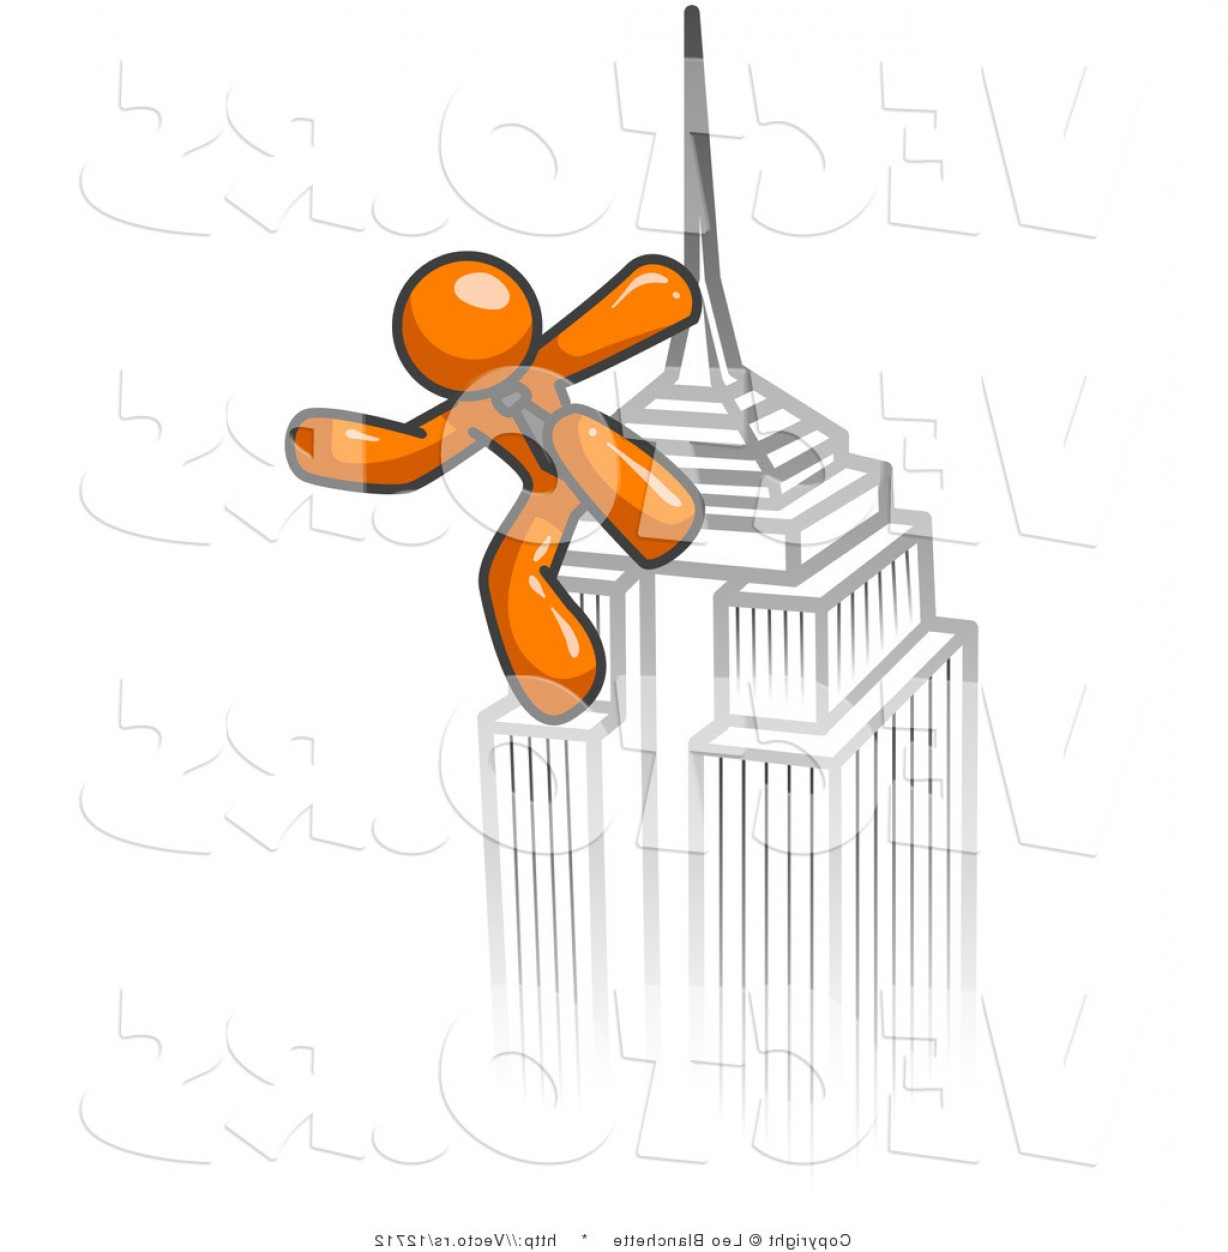 Drawings Of King Kong Vector: Vector Of Orange Guy Climbing To The Top Of A Skyscraper Tower Like King Kong Success Achievement By Leo Blanchette